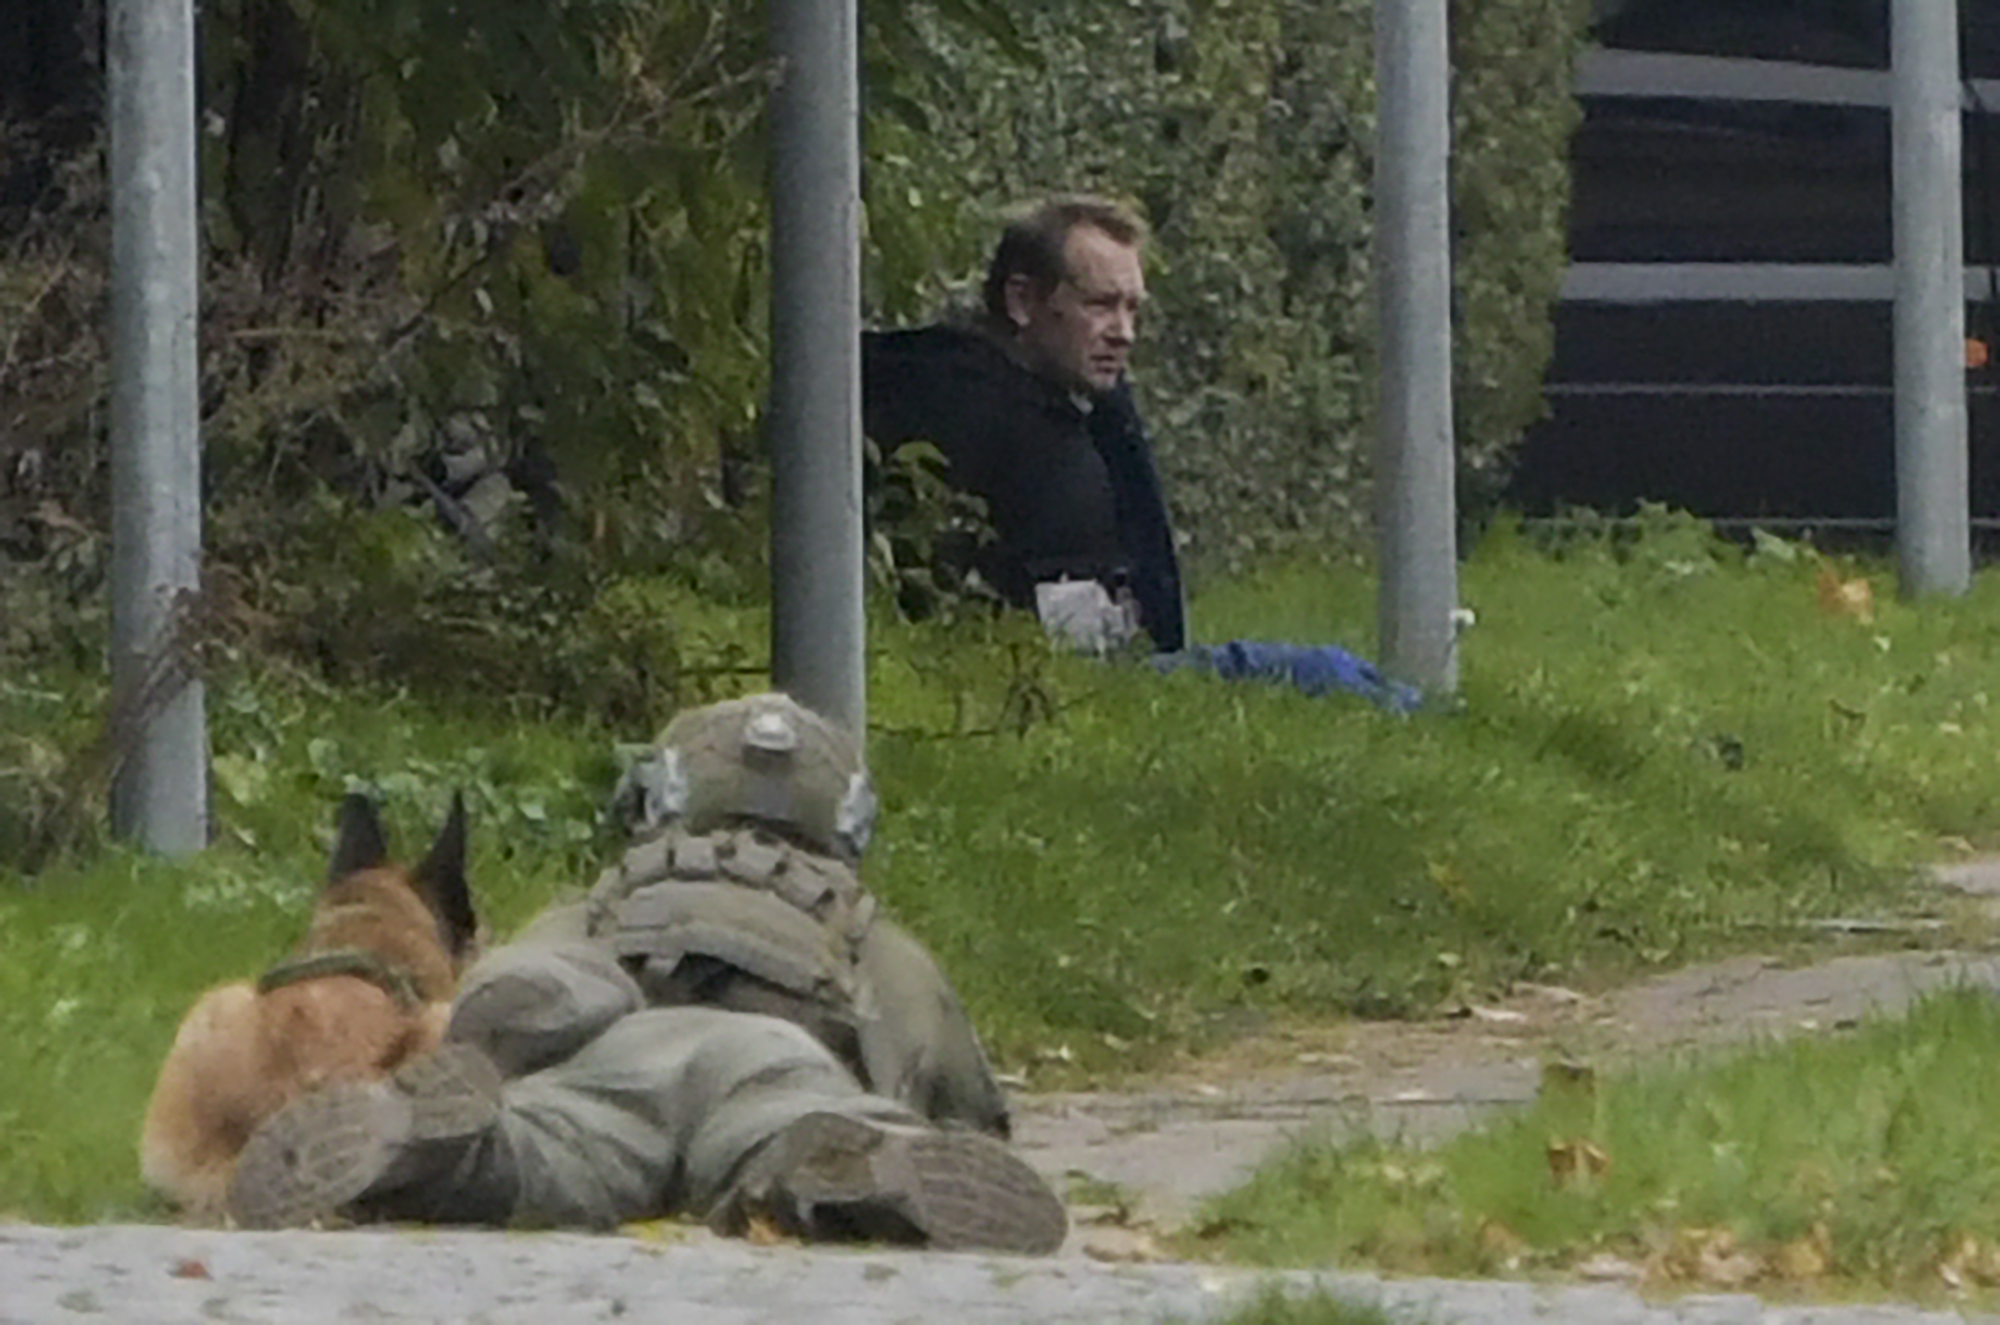 A police marksman and his dog observes convicted killer Peter Madsen threatening police with detonating a bomb while attempting to break out of jail in Albertslund, Denmark on Oct. 20, 2020. (NILS MEILVANG/Ritzau Scanpix/AFP via Getty Images)